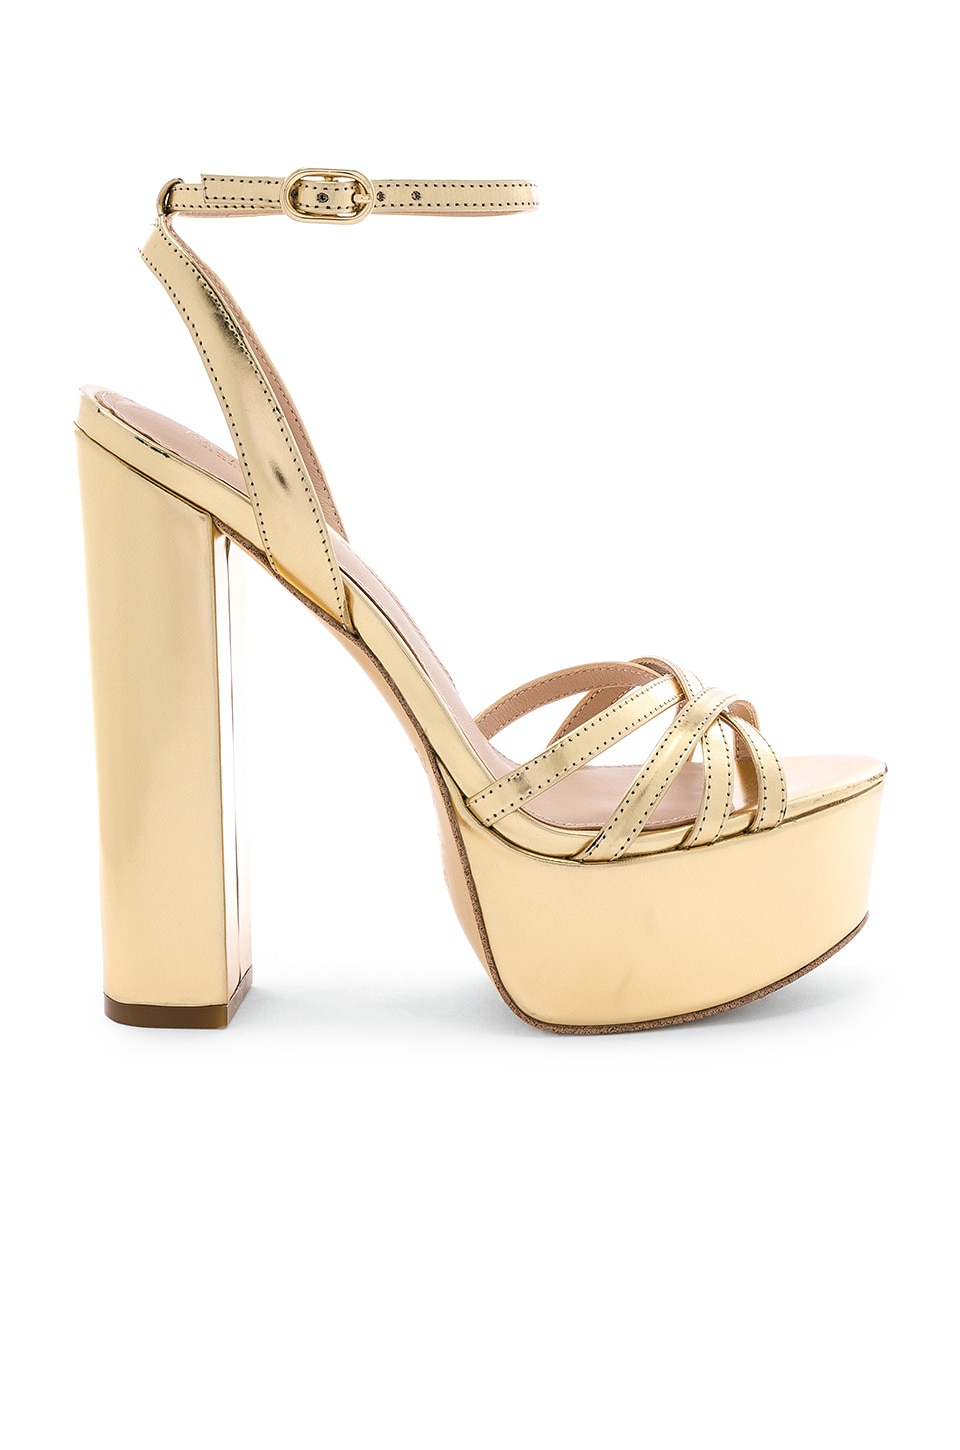 RACHEL ZOE Charlotte Platform Sandal in Light Gold